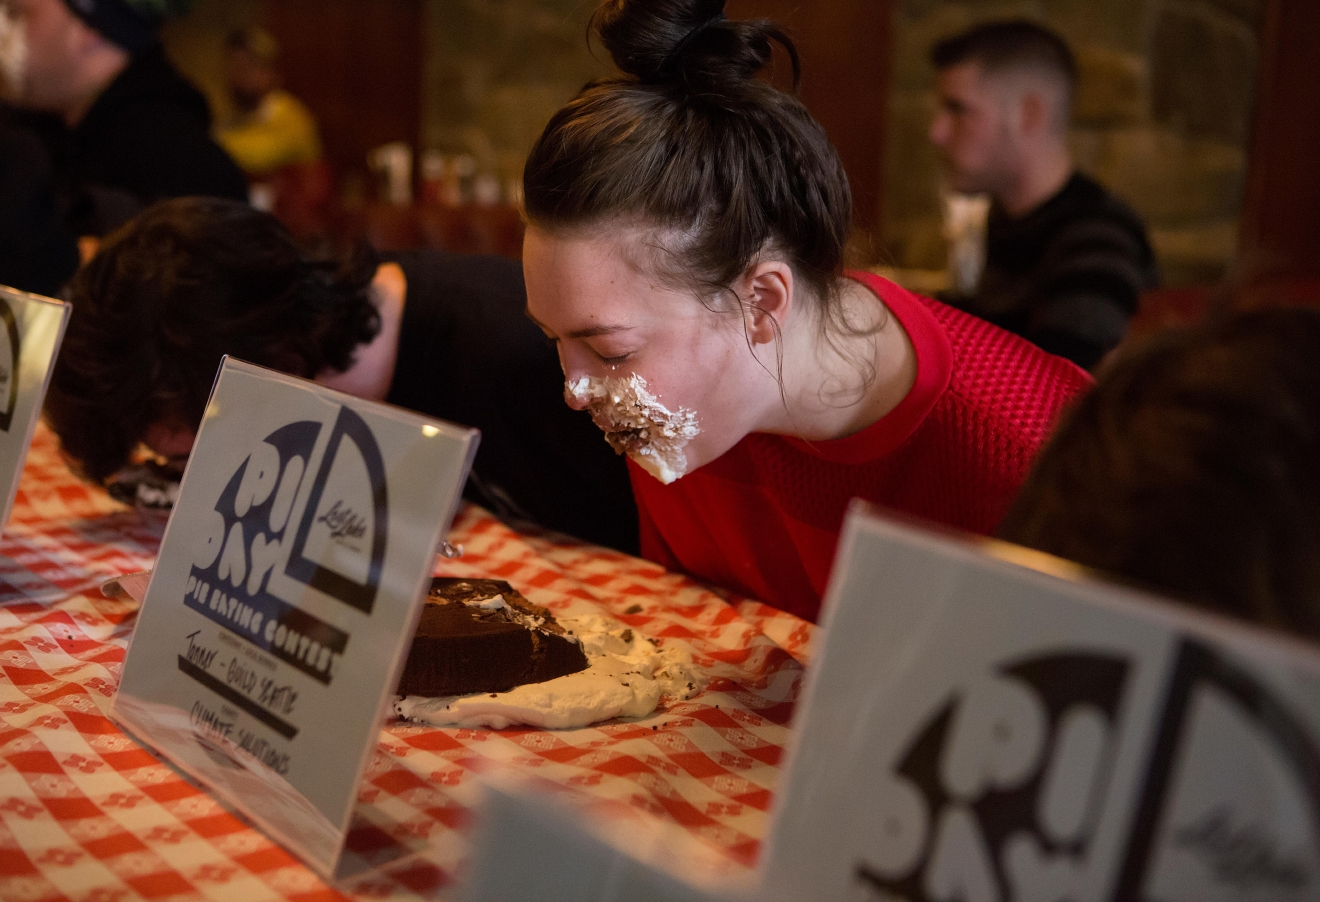 Photos: Seattle celebrates Pi(e) - by stuffing our faces ...